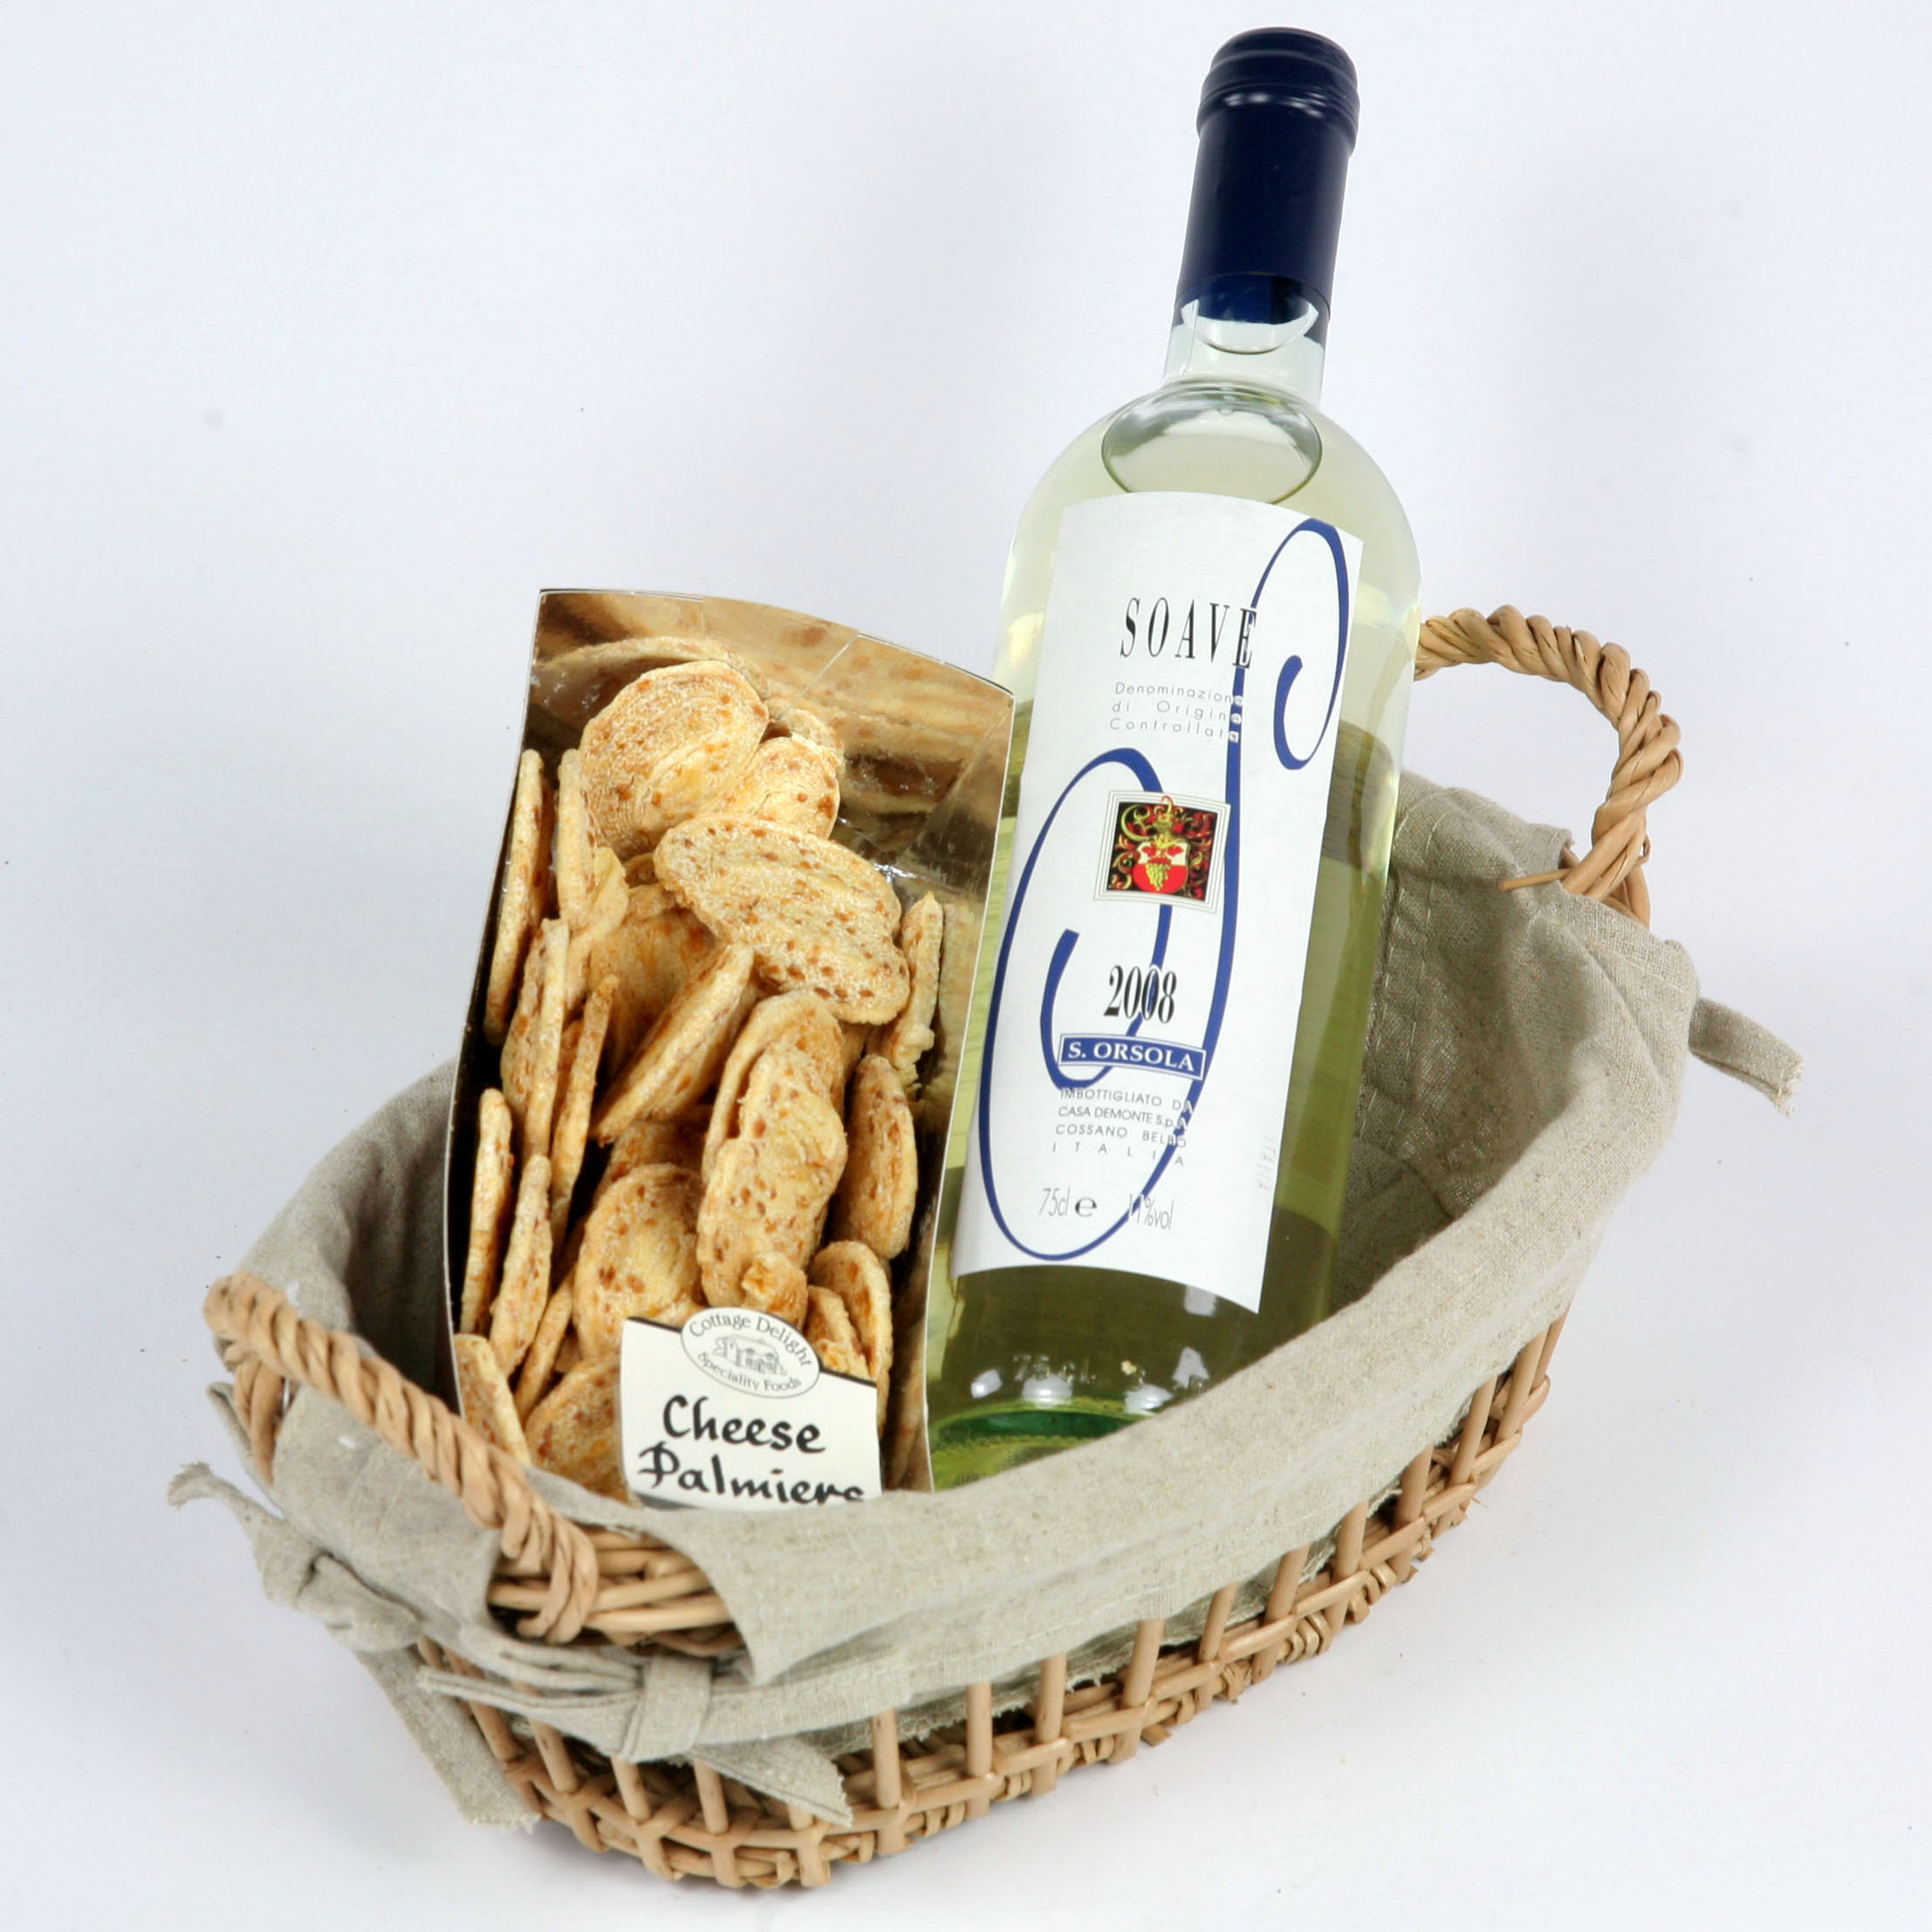 Baby Gifts Next Day Delivery Uk : Gift delivery uk images whisky gifts